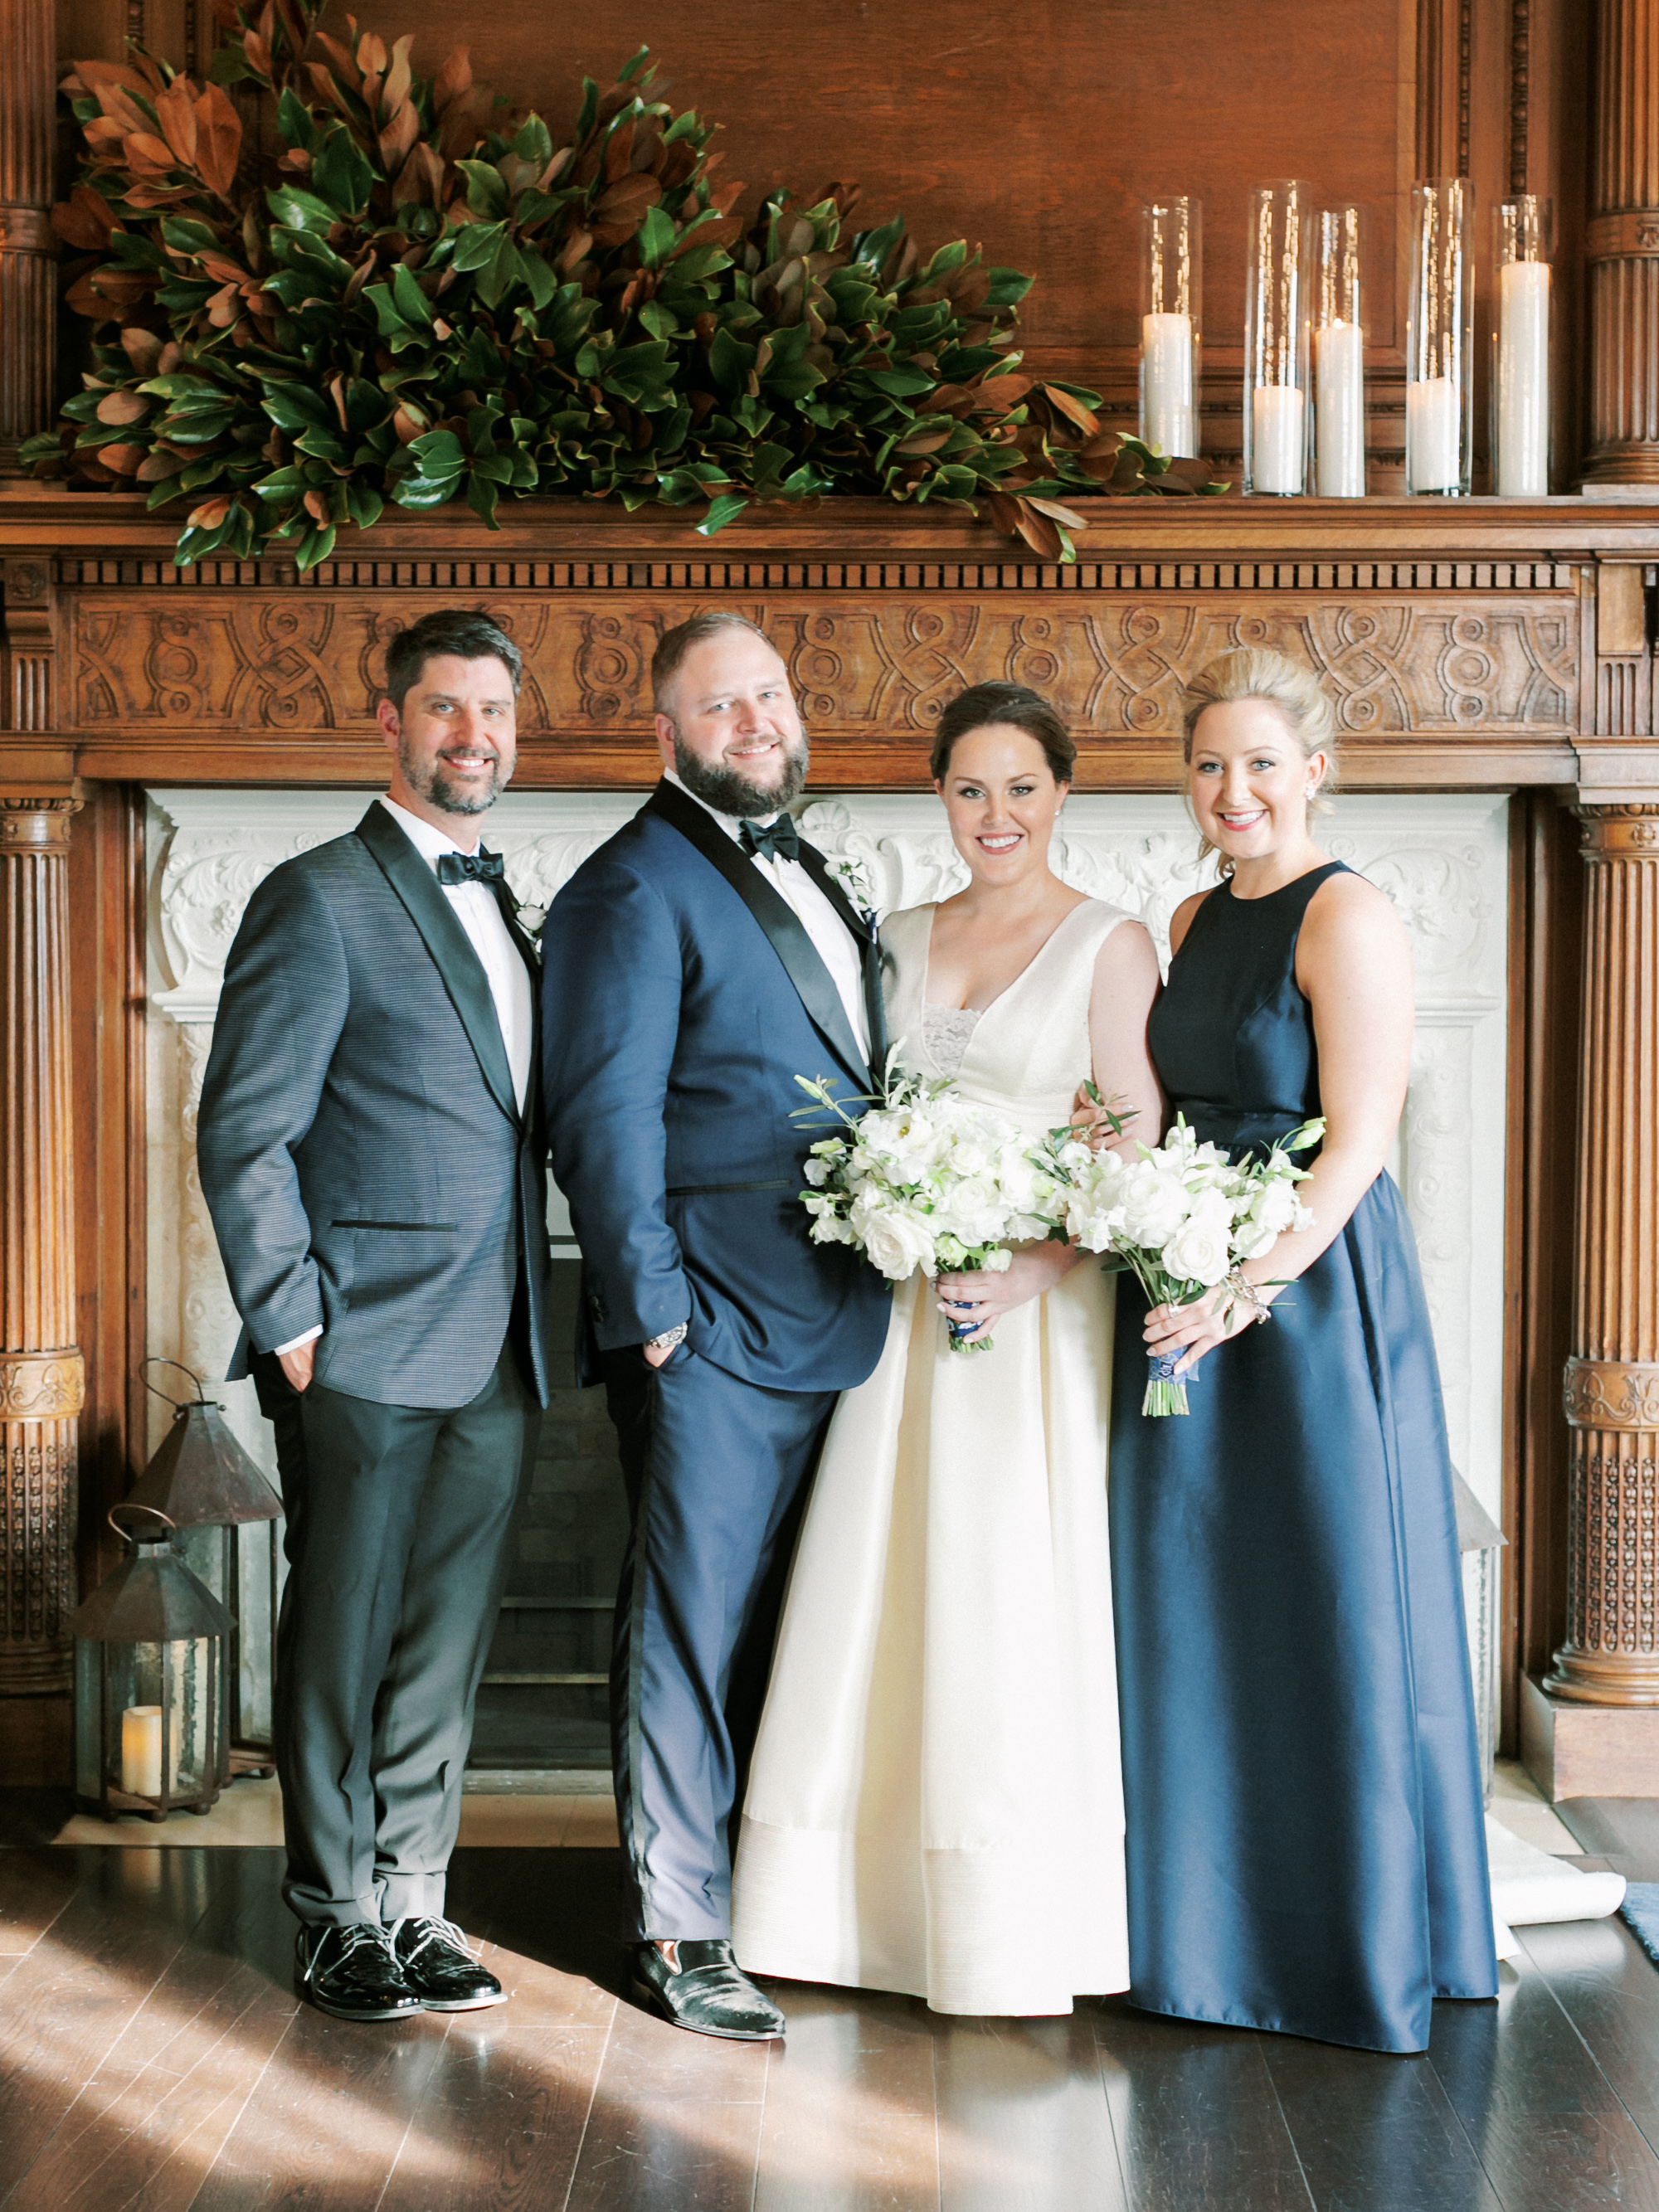 kelly drew new jersey maid of honor best man with couple